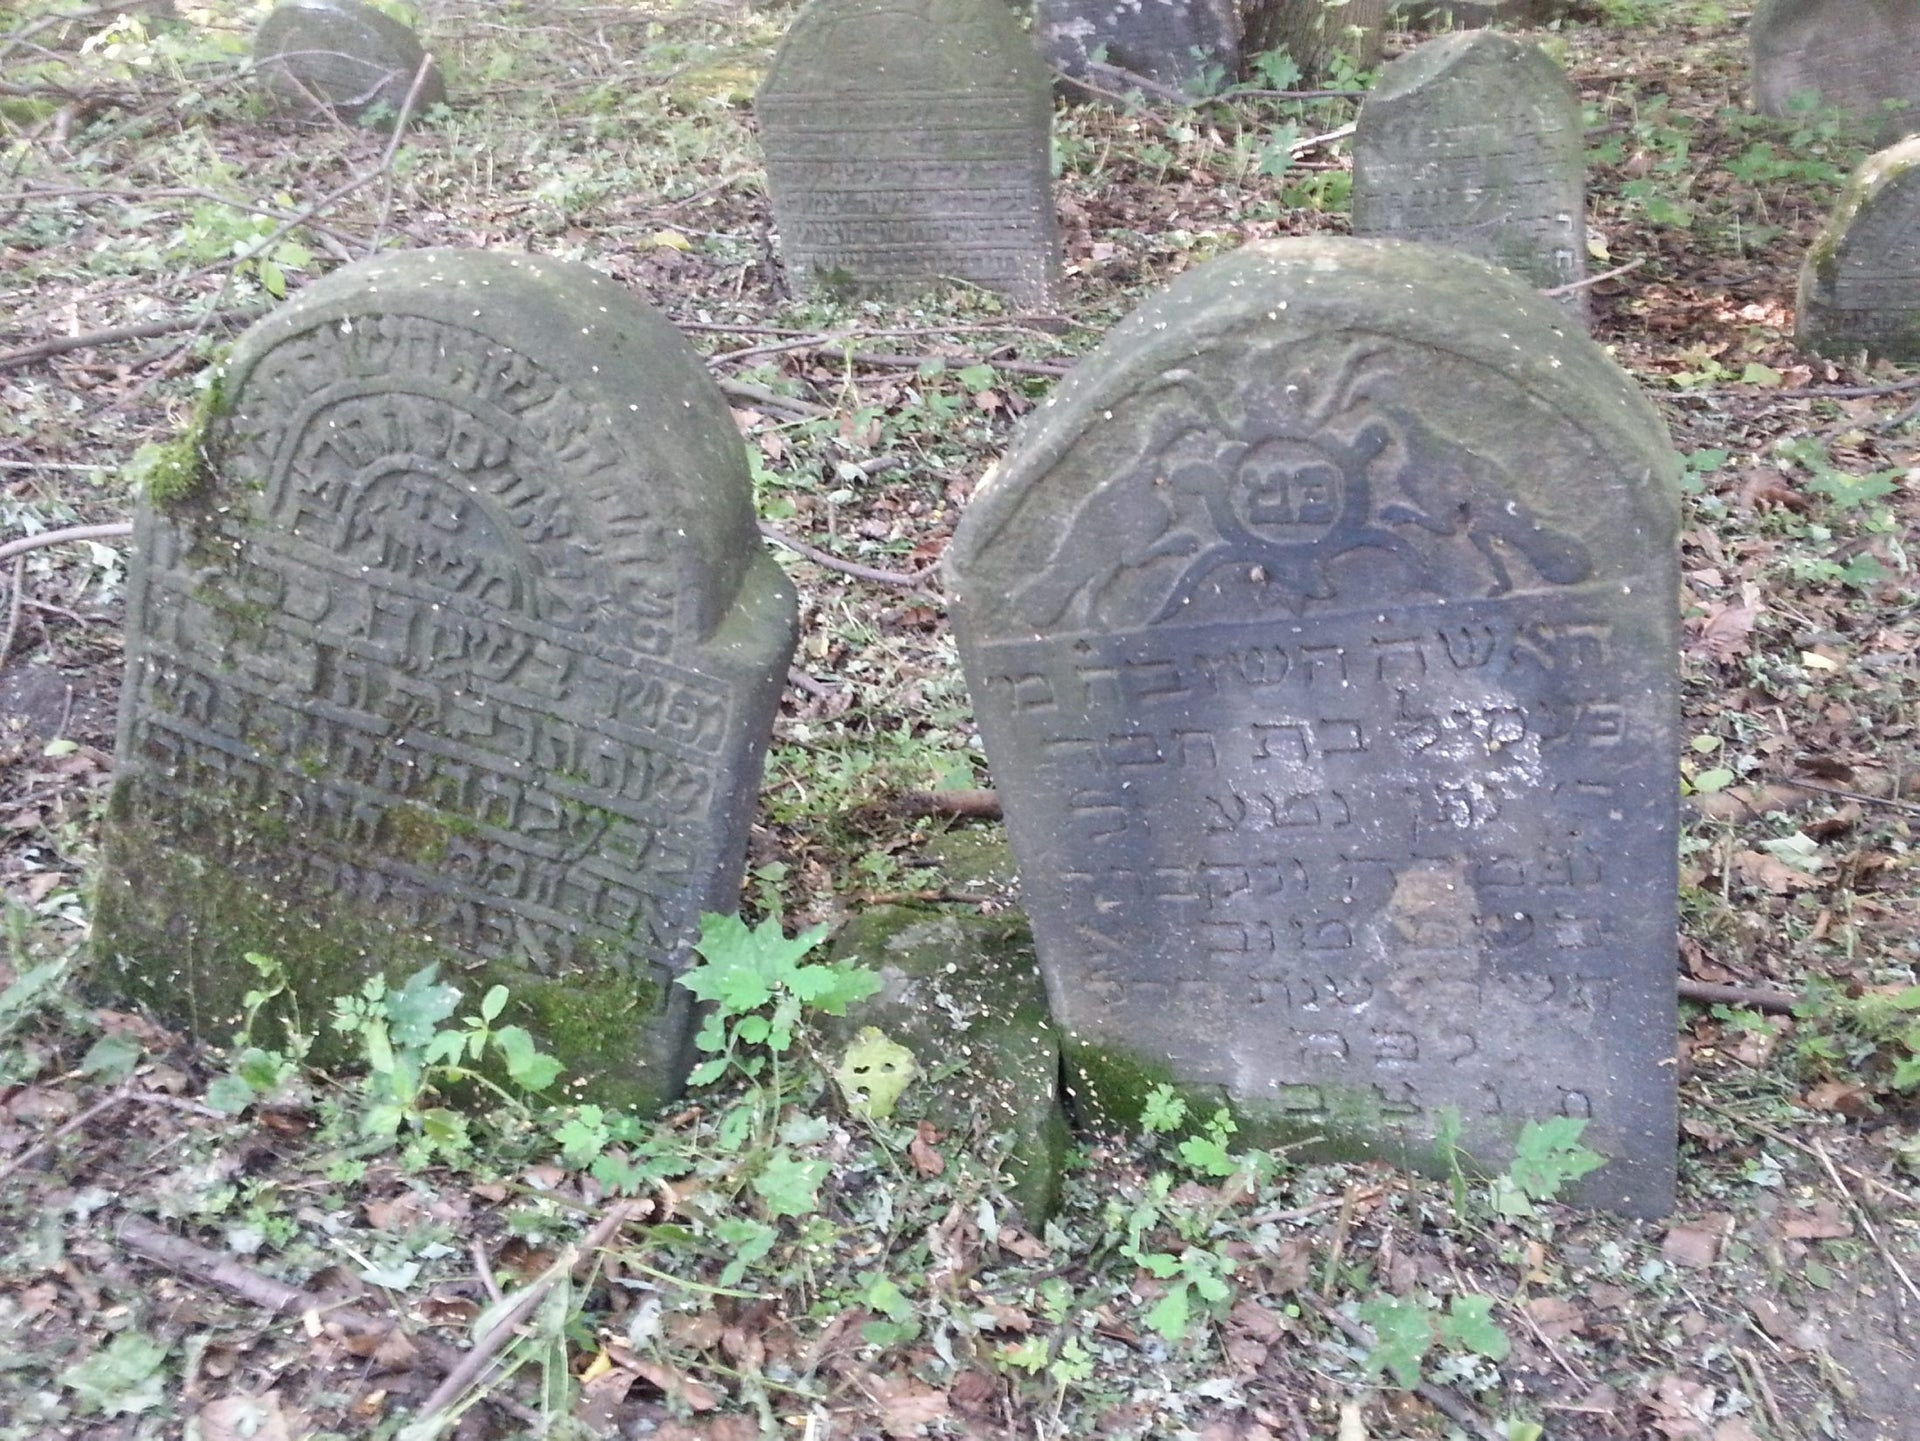 A Jewish cemetery in Poland.